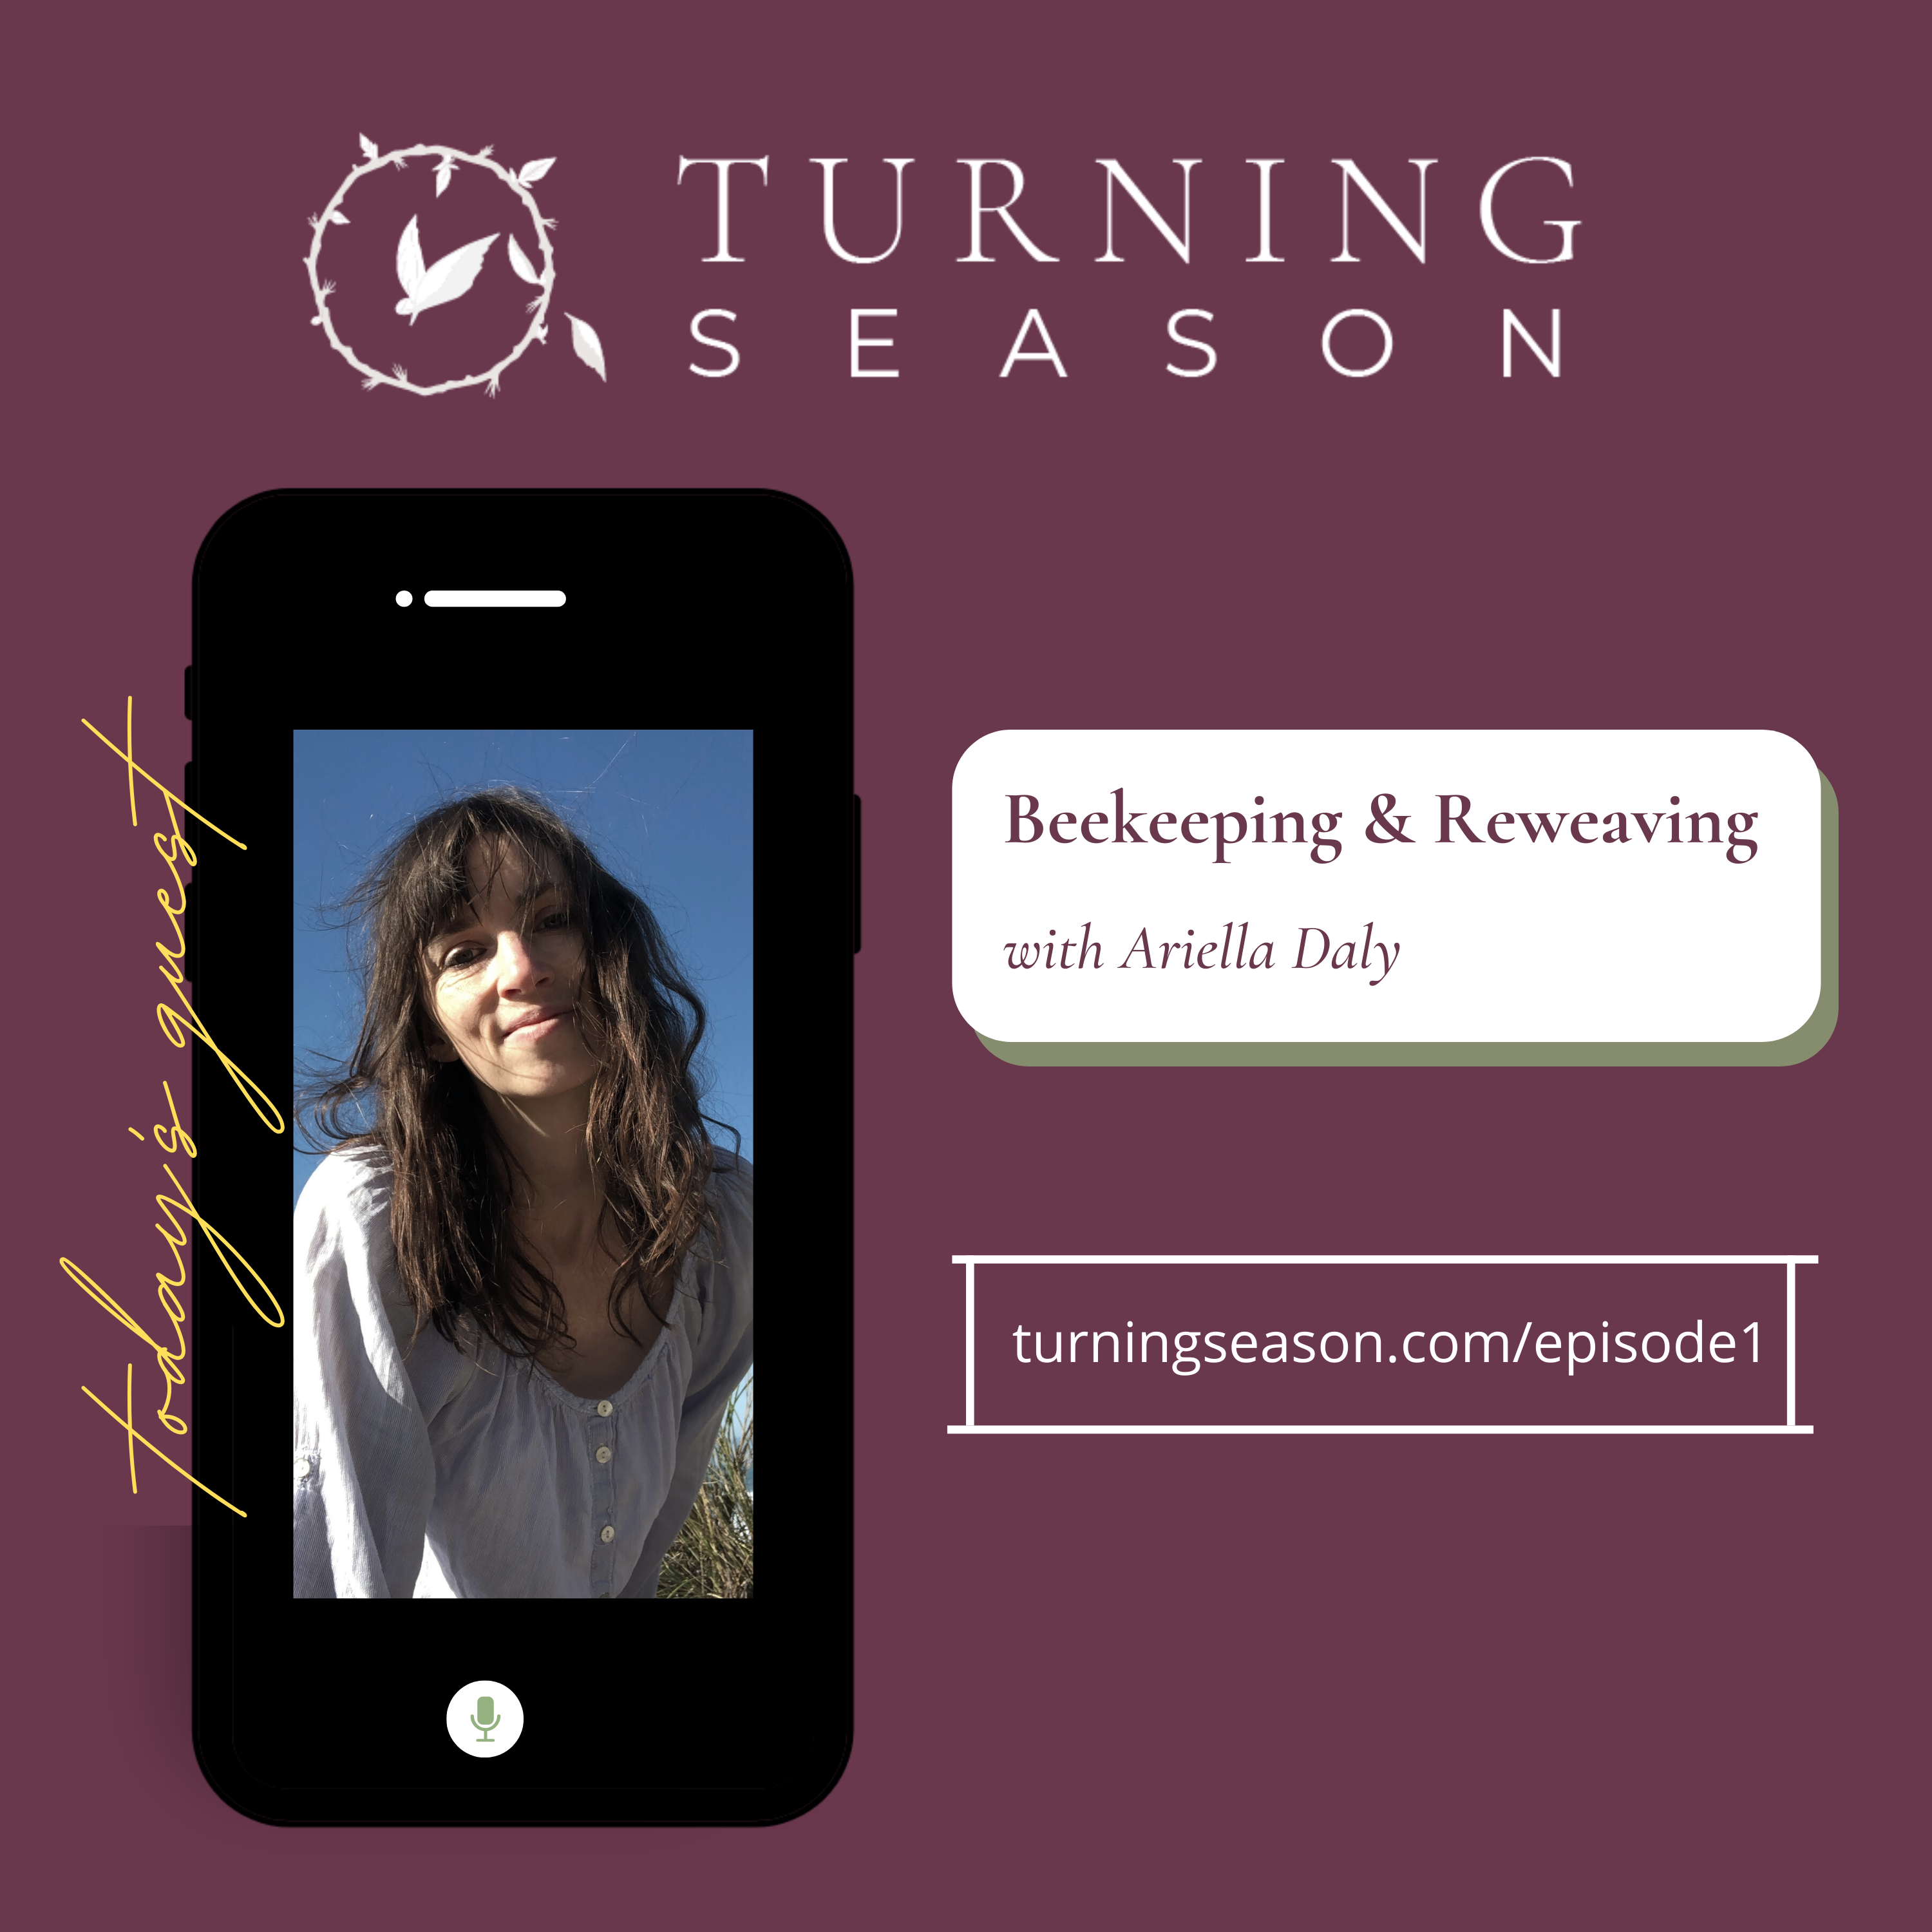 Turning Season Podcast Episode 1 Beekeeping and Reweaving with Ariella Daly hosted by Leilani Navar turningseason.com